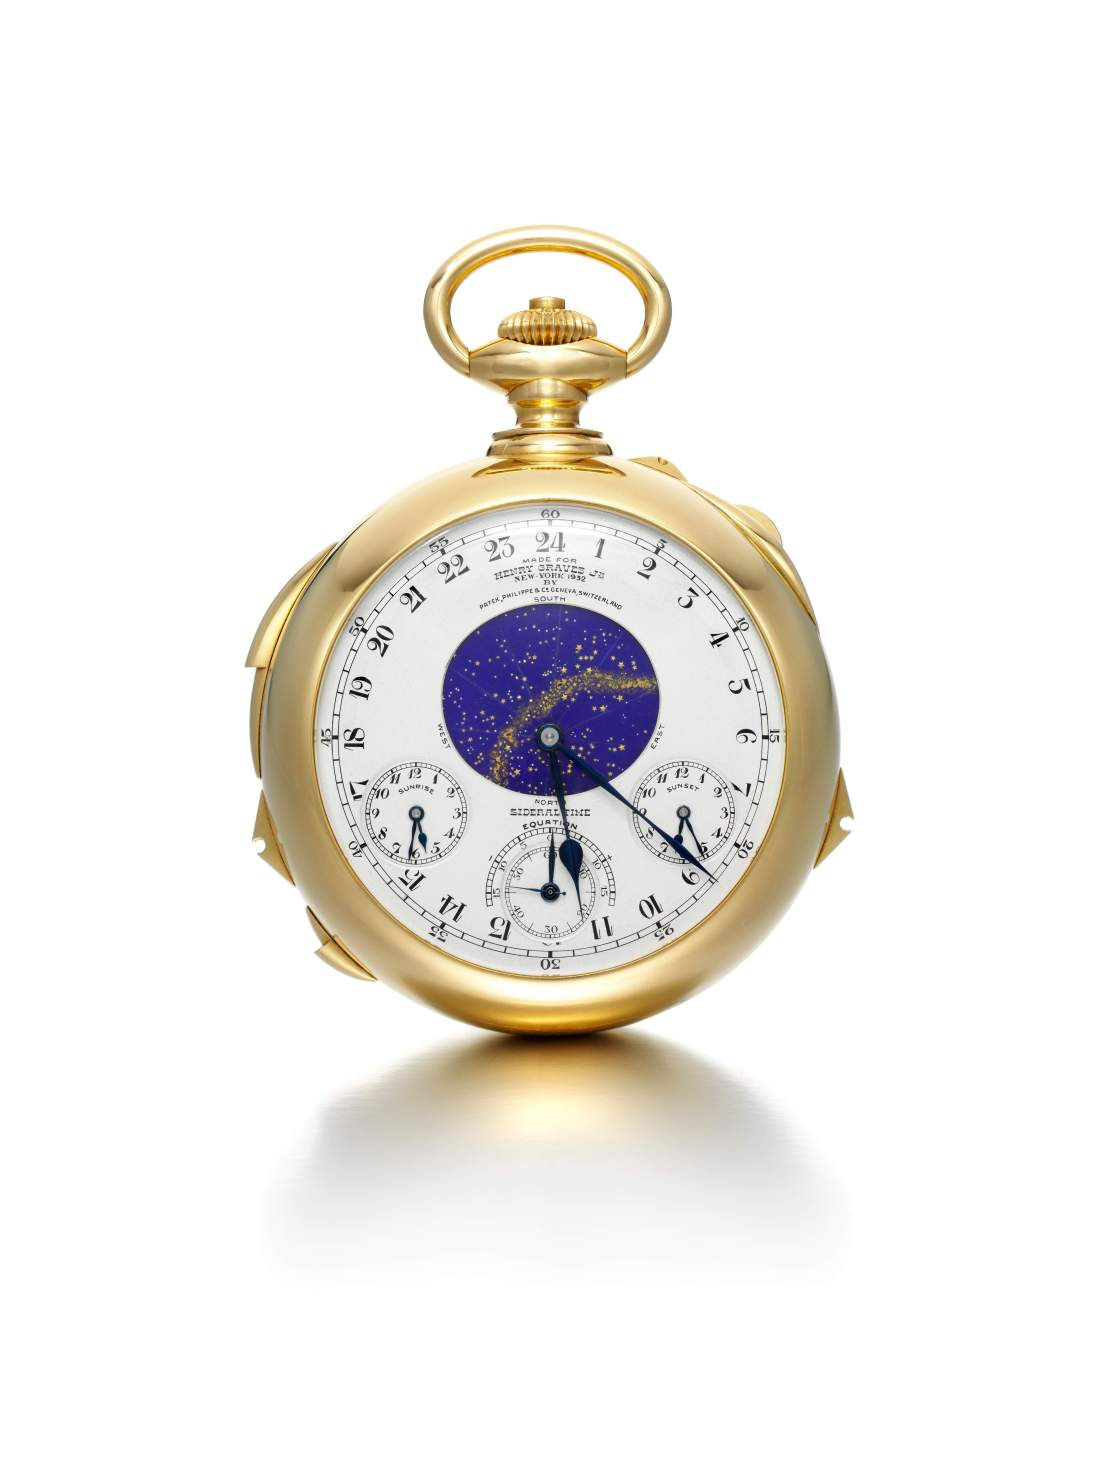 The Henry Graves Supercomplication - Siderial Time dial